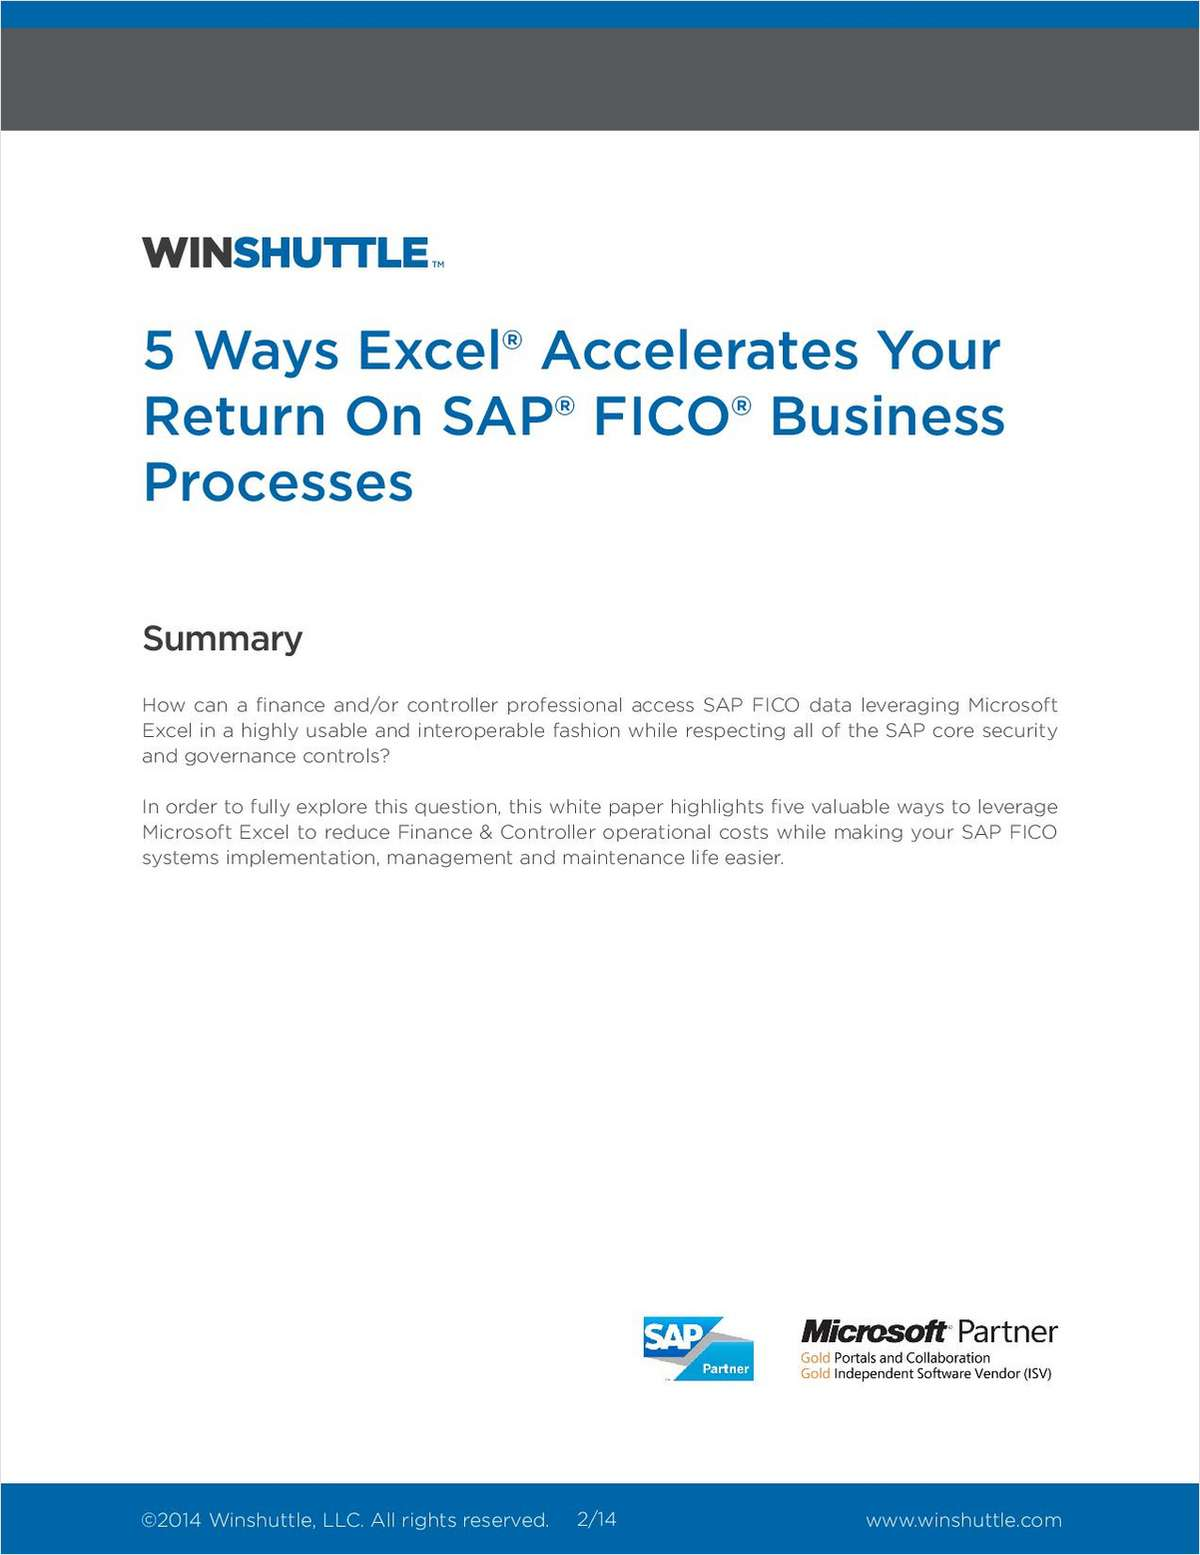 5 Ways Excel Accelerates Your Return on SAP FICO Business Processes